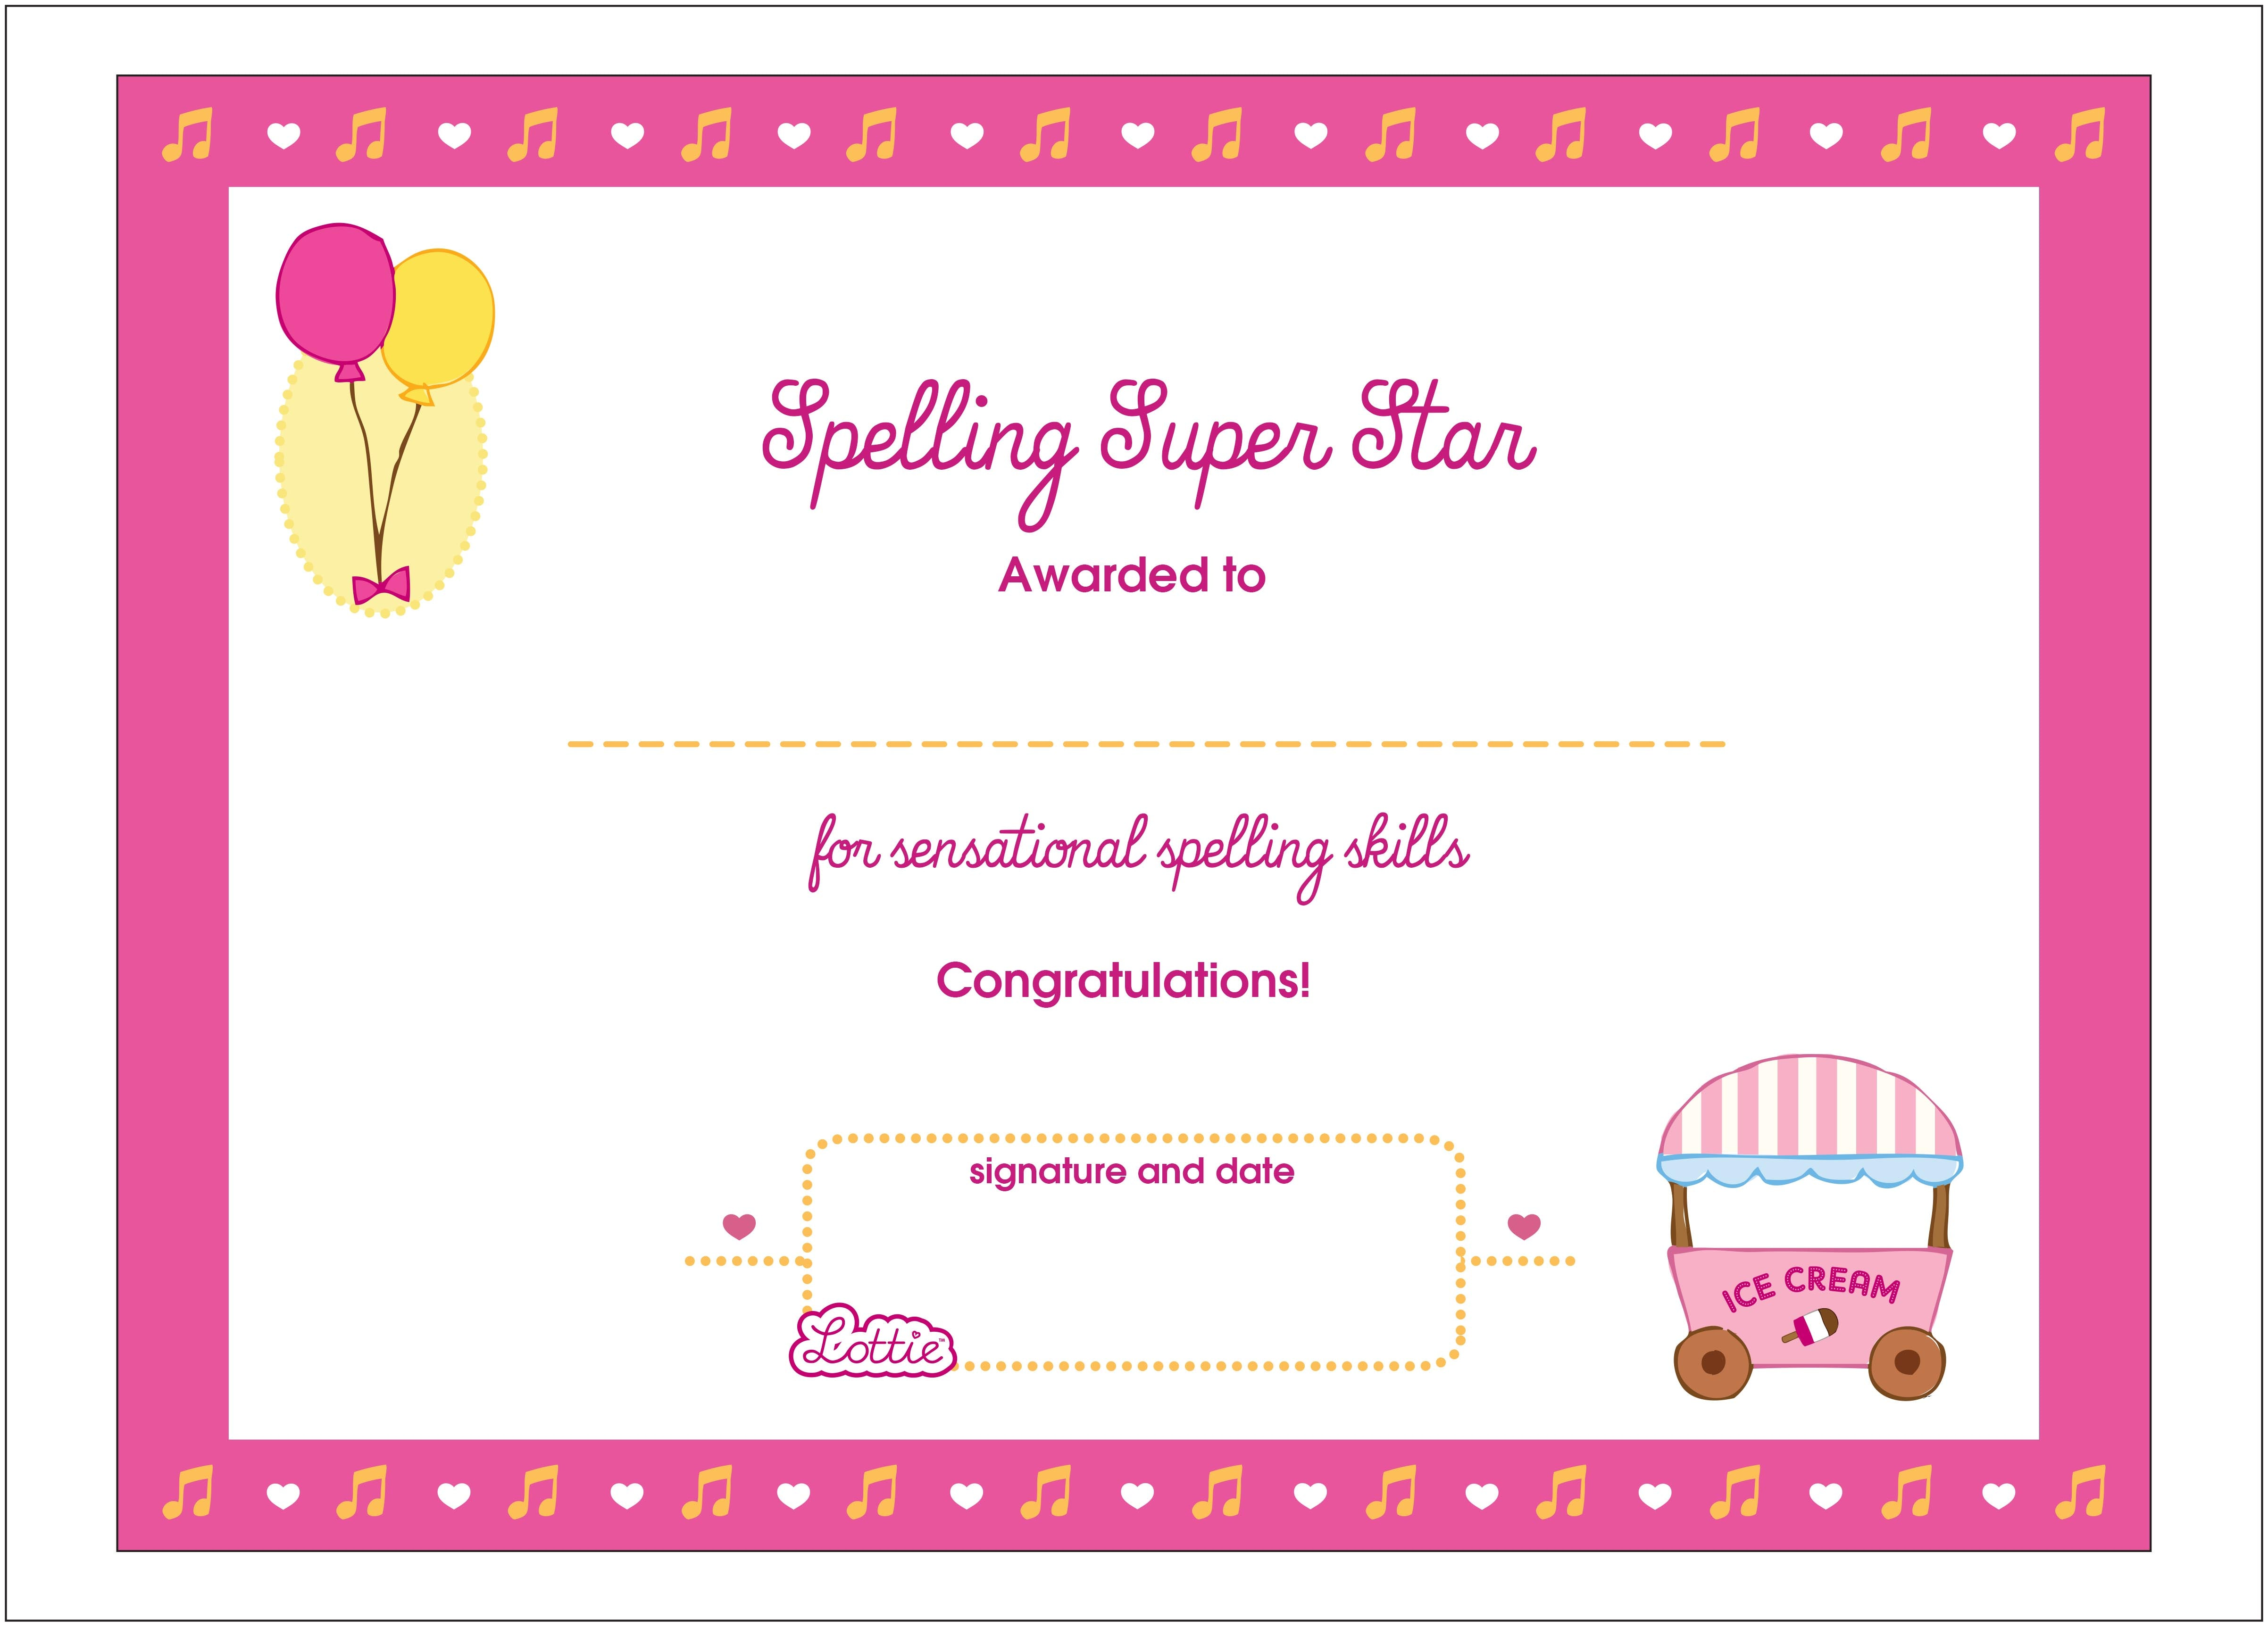 Spelling super star printable award certificate lottie dolls spelling super star printable award certificate 1betcityfo Image collections